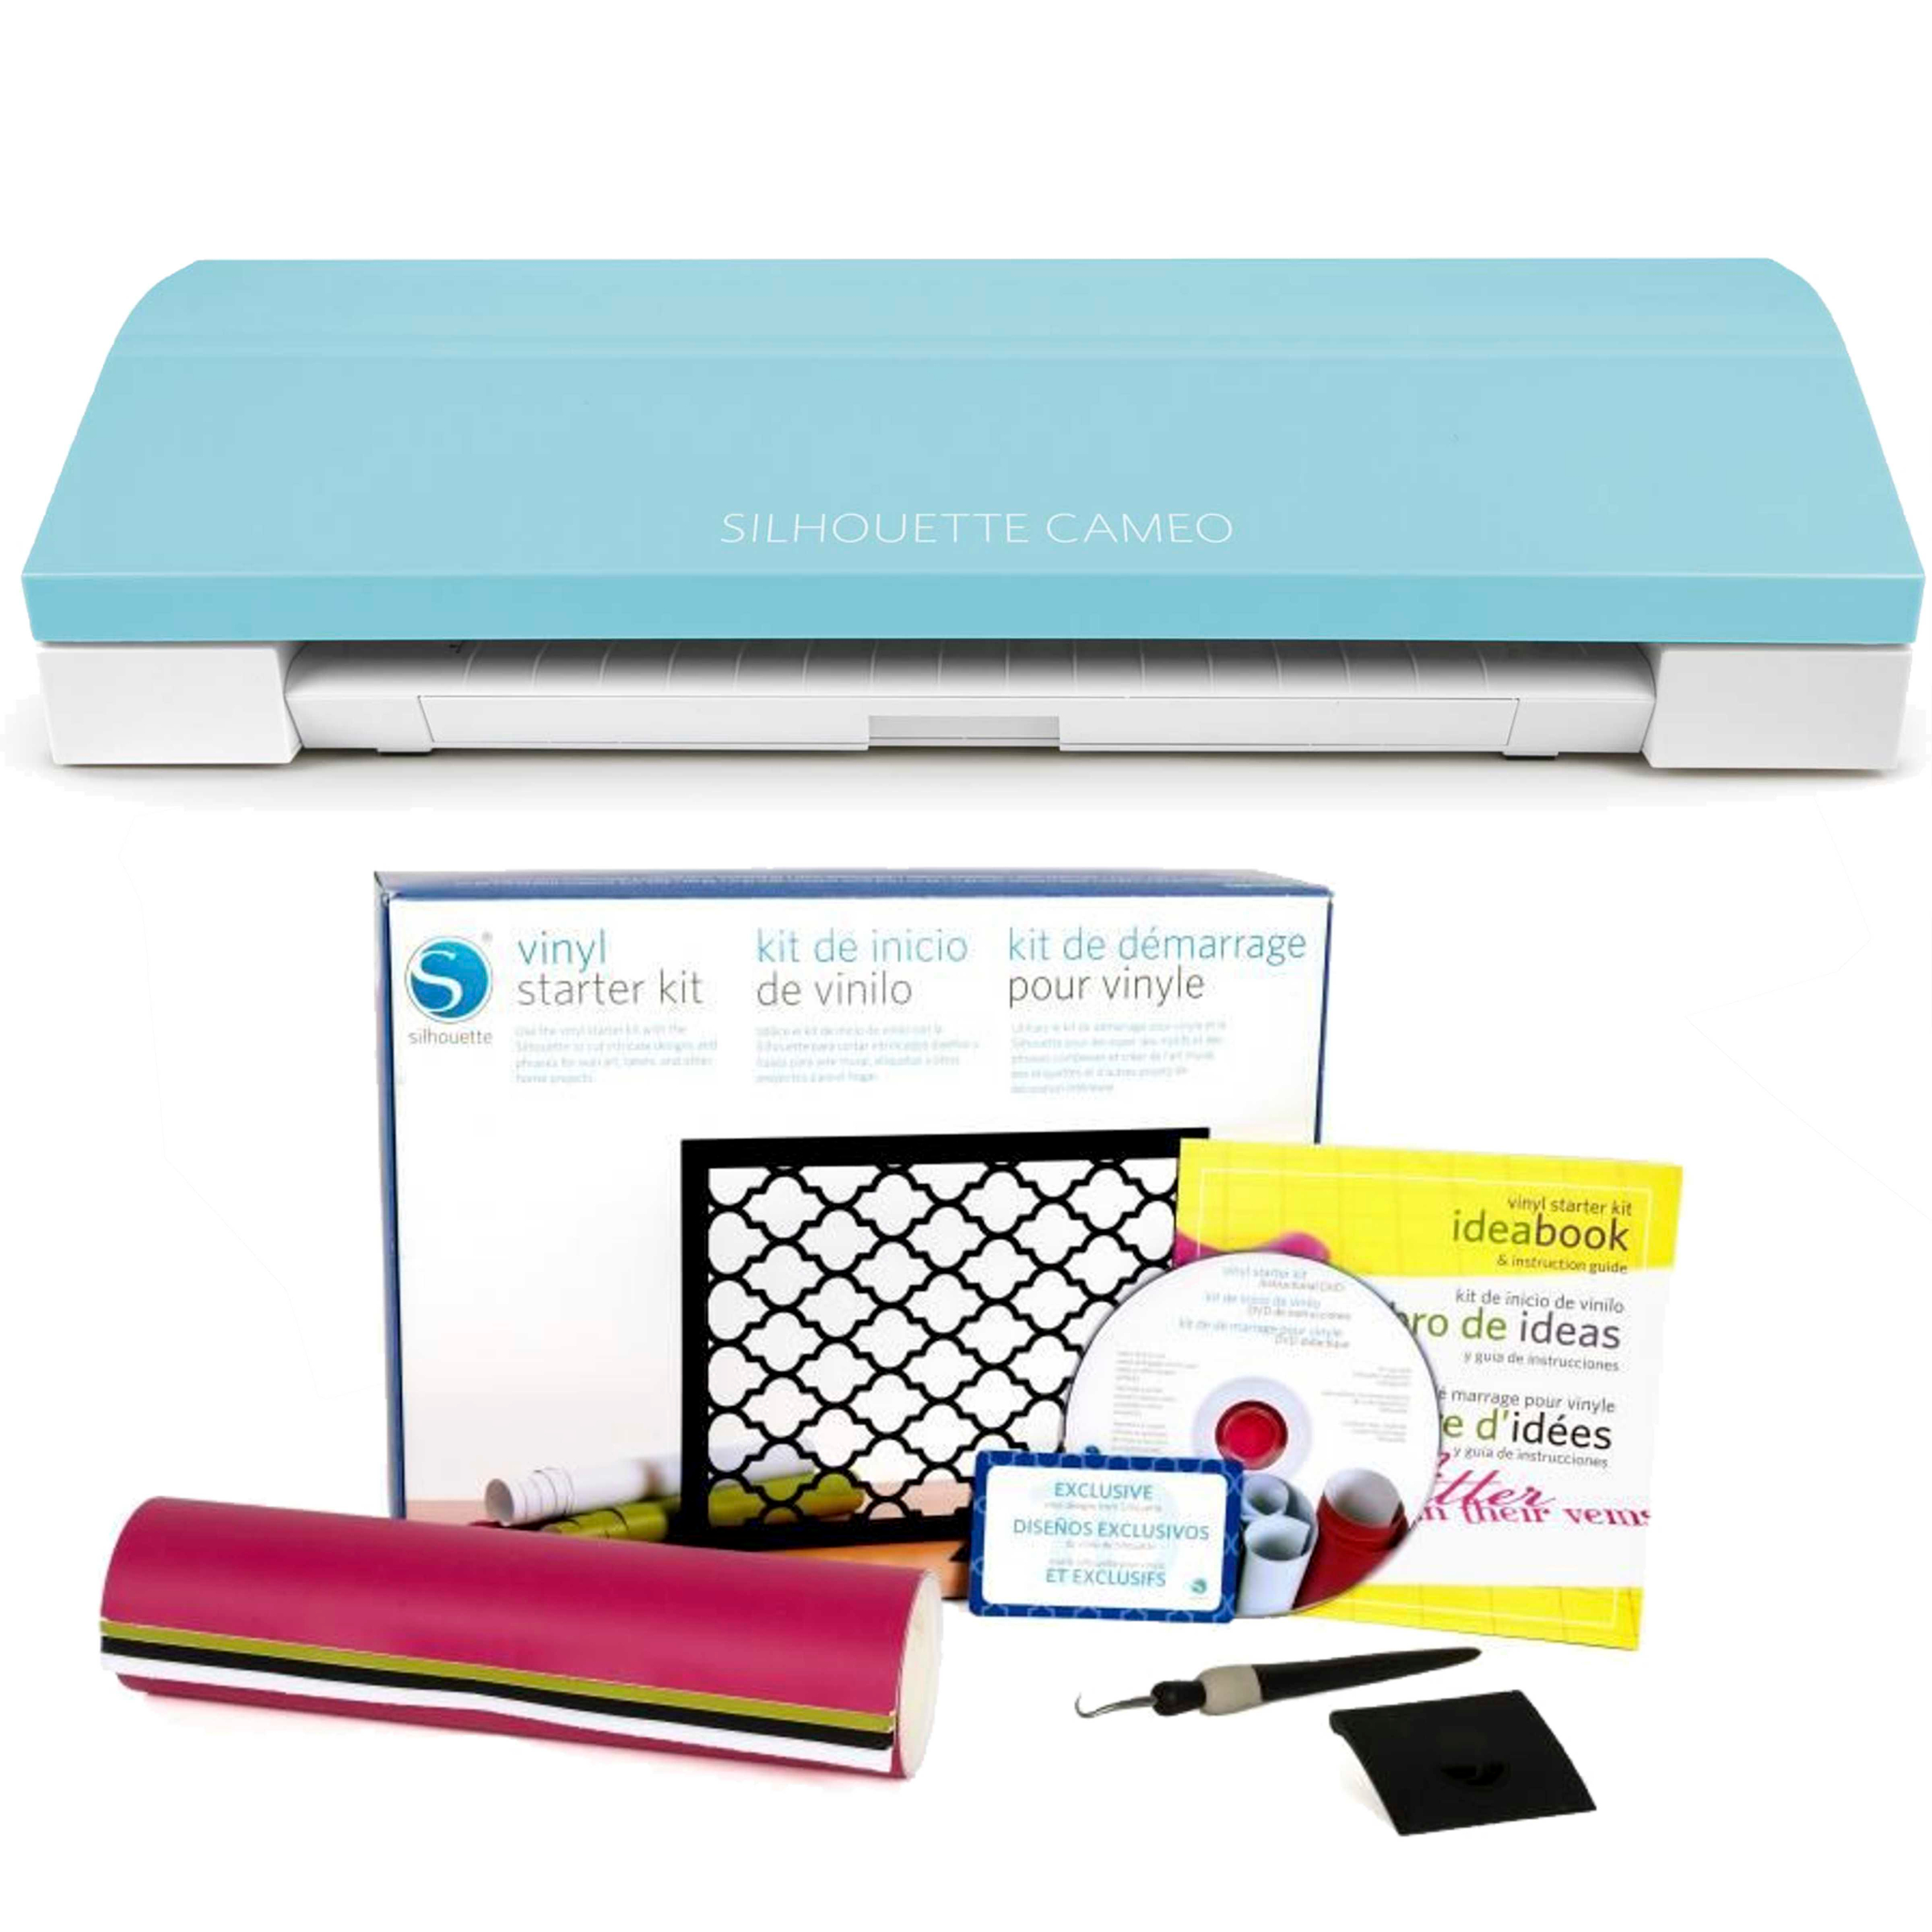 SILHOUETTE CAMEO 3 Beschriftung Bundle